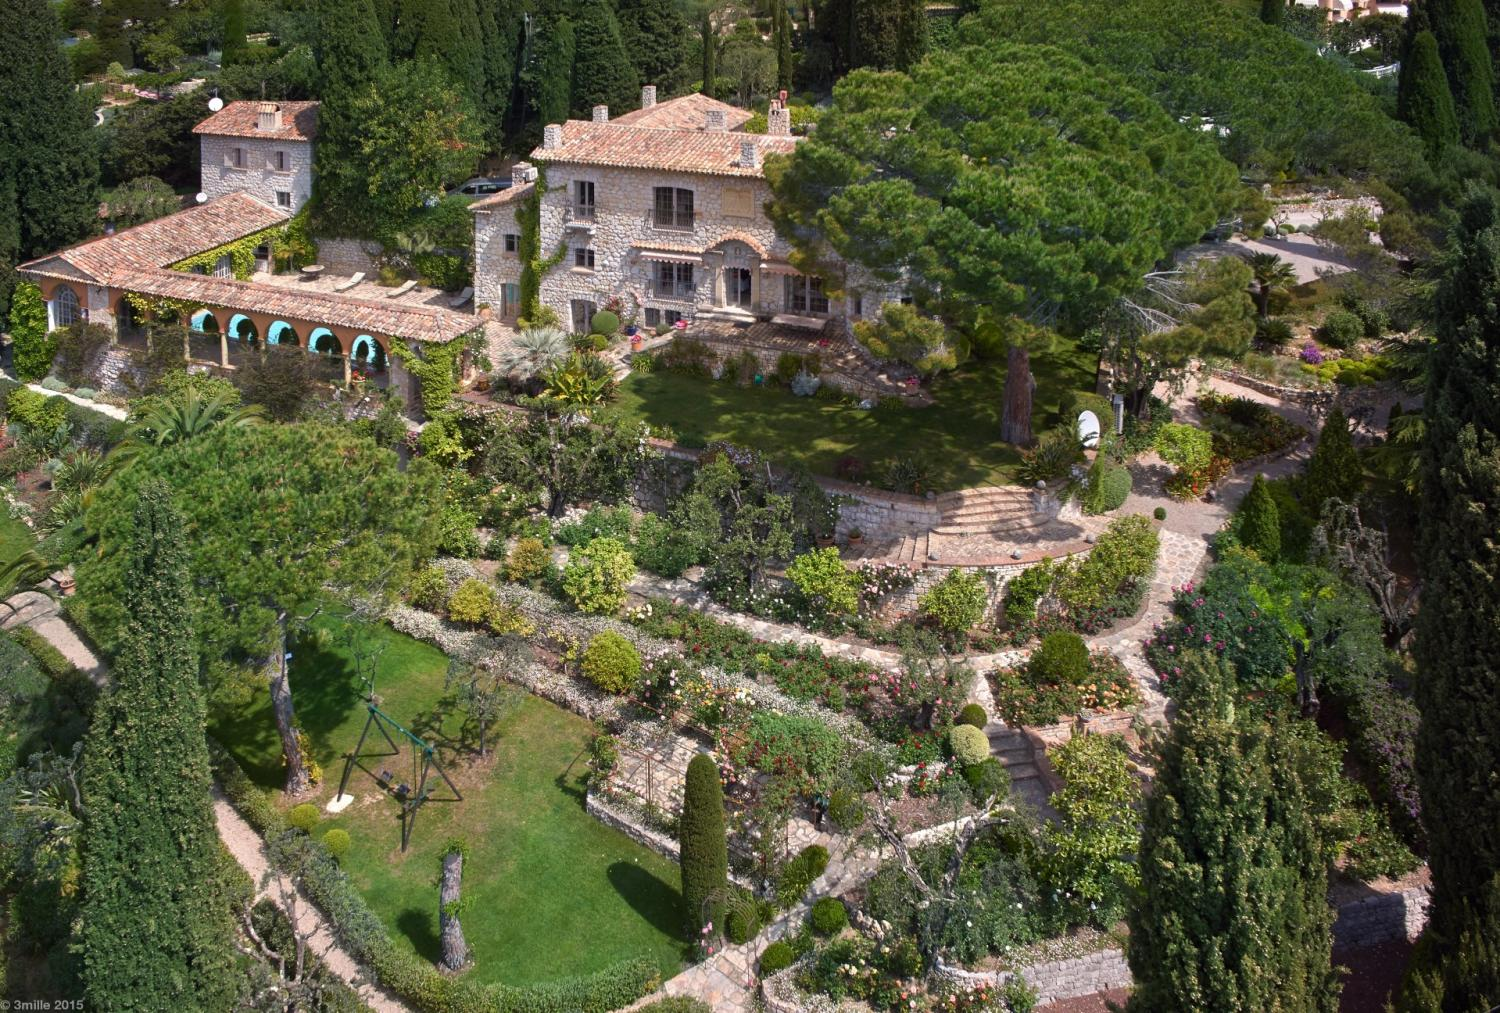 Villa Exterior and Pool, La Roseraie, Mougins, Cote D'Azur.